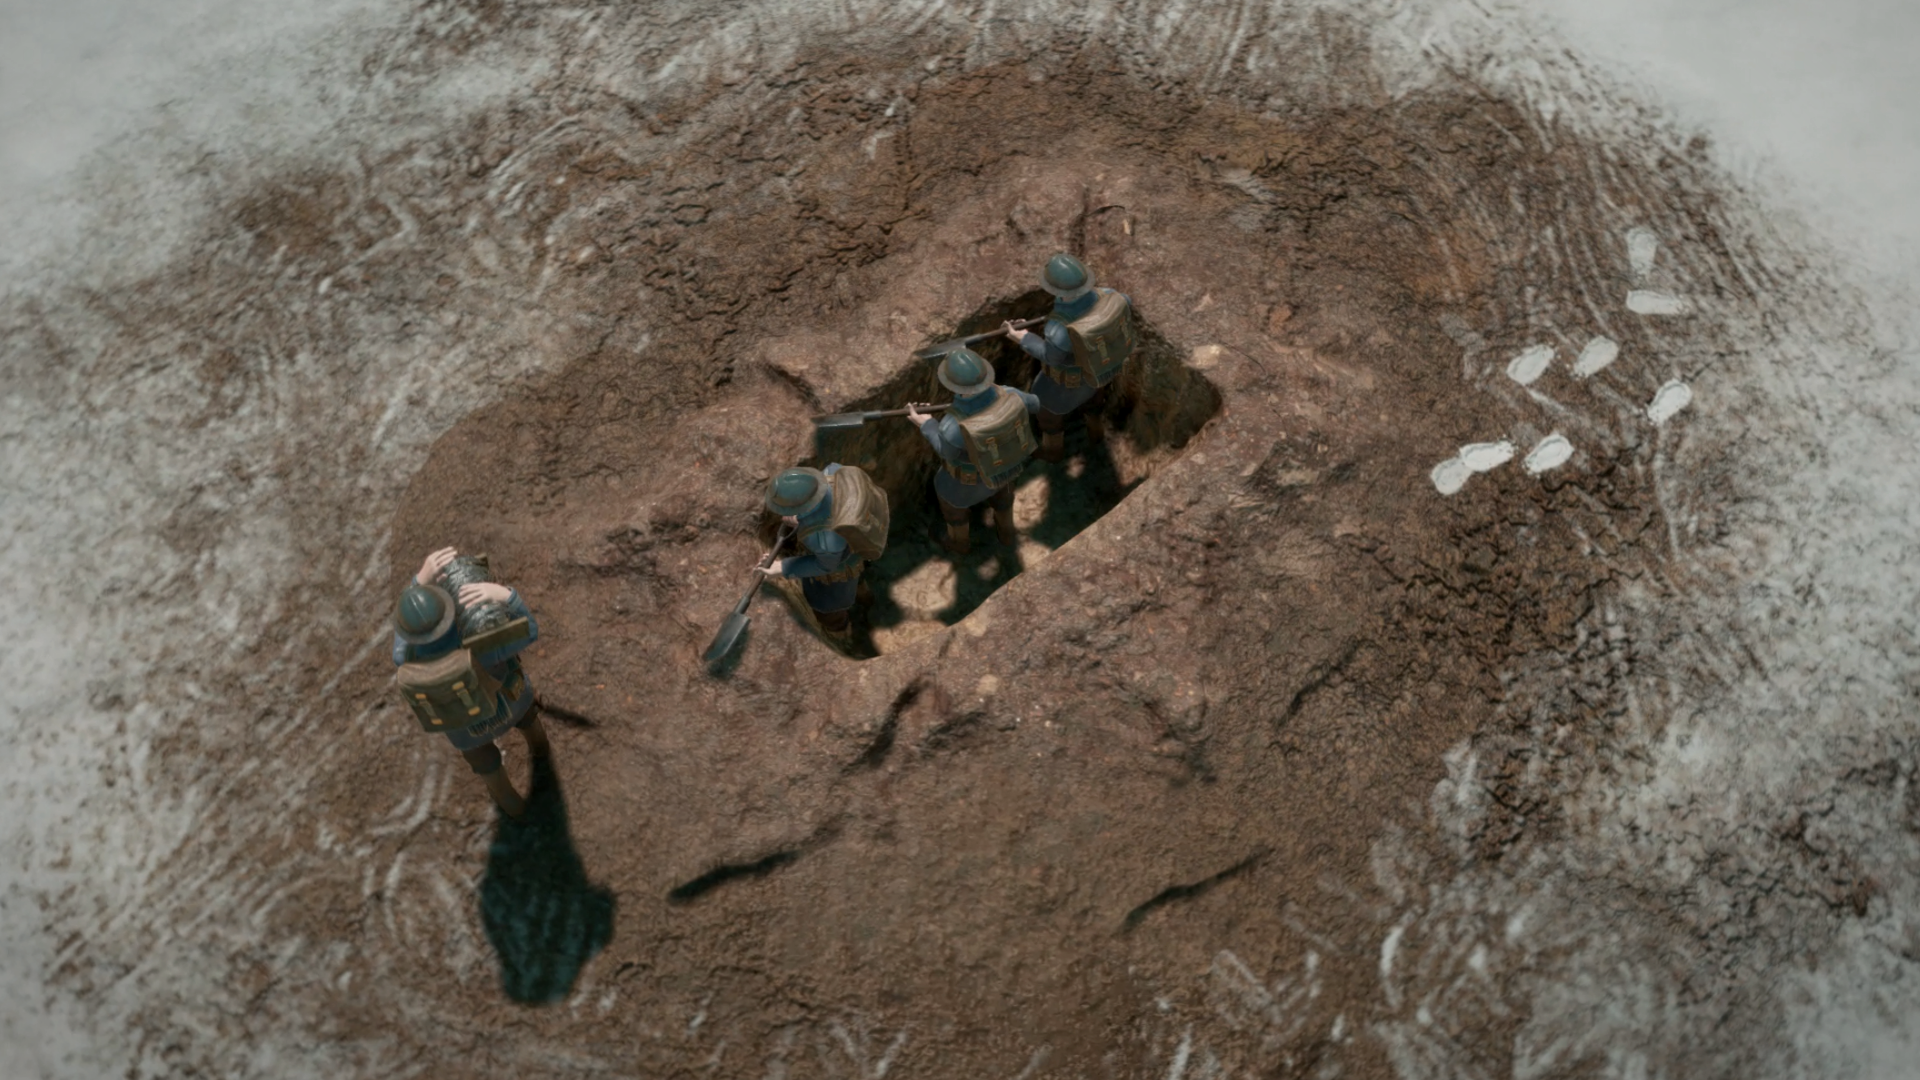 Three soldiers sheltering in a hole from the game Foxhole.